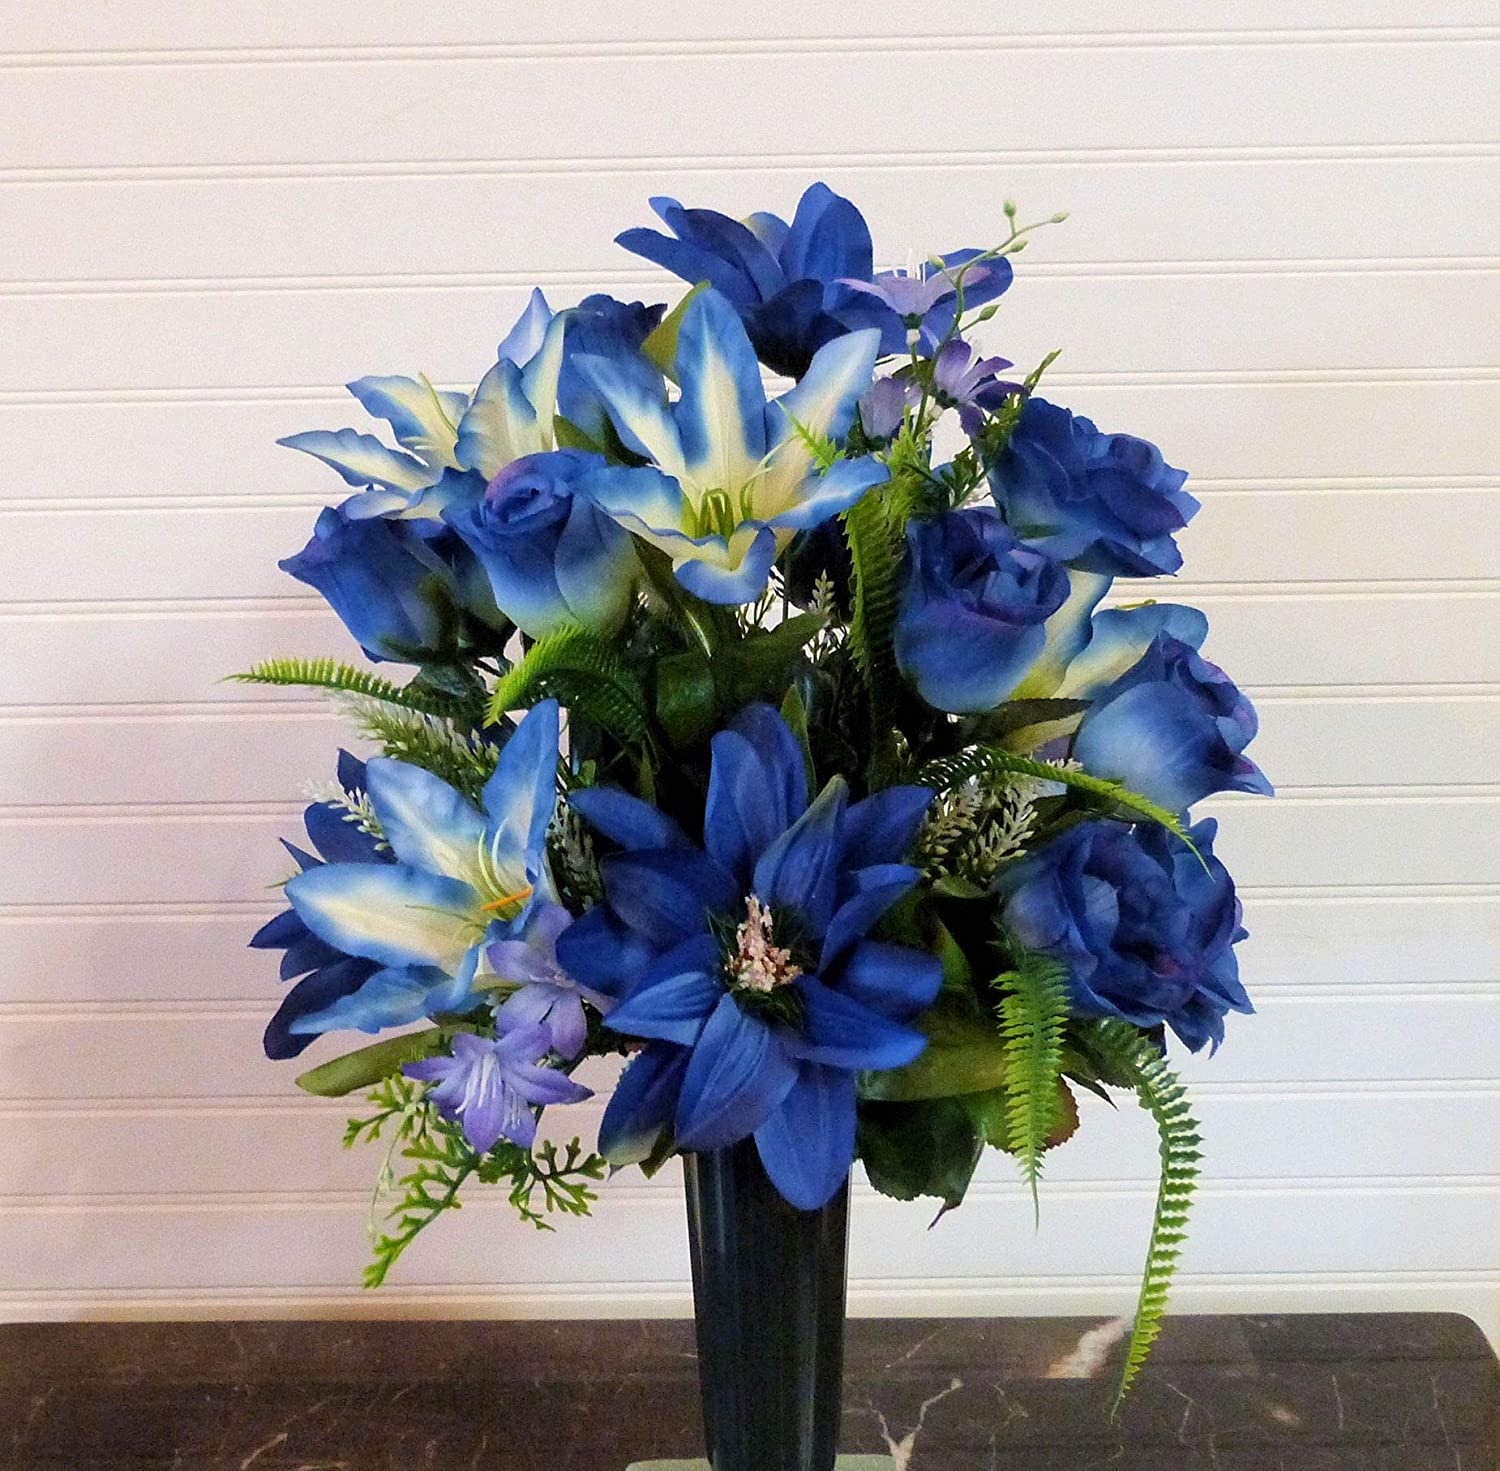 Flowers For Cemetery Vase Cemetery Vase Flowers Cemetery Arrangement With Blue Lilies